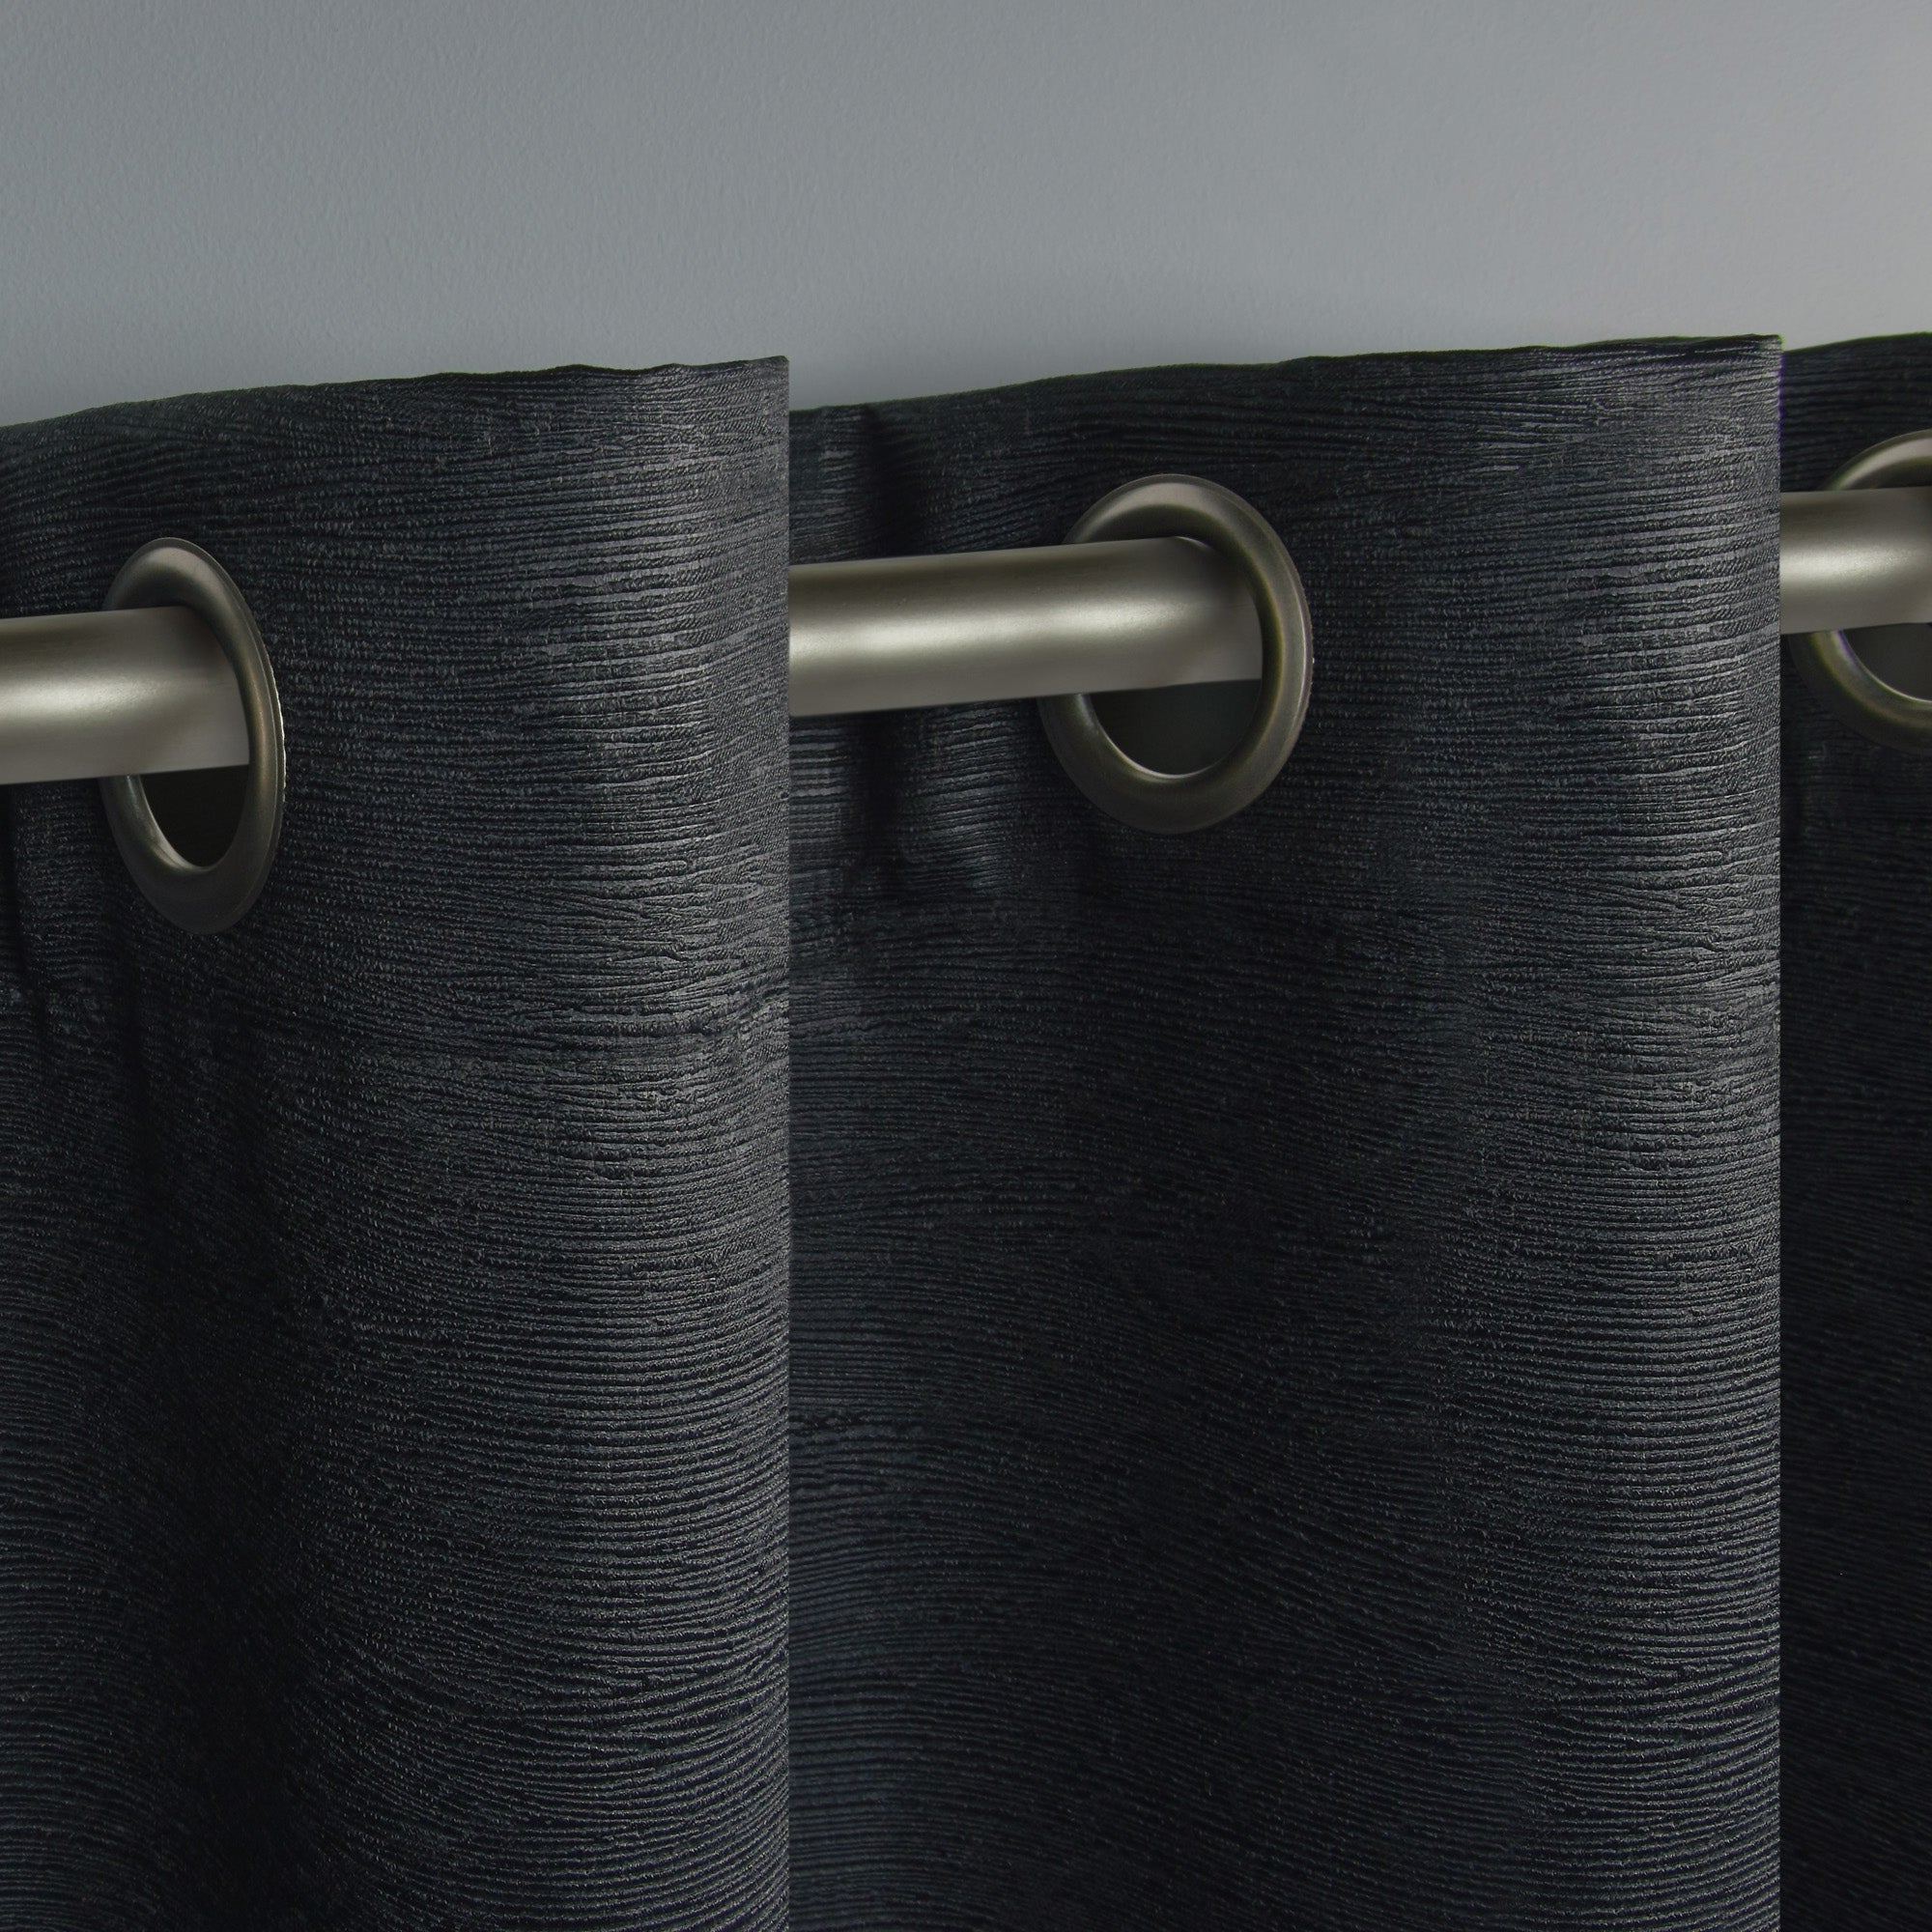 Oxford Sateen Woven Blackout Grommet Top Curtain Panel Pairs With Regard To Best And Newest Ati Home Oxford Sateen Woven Blackout Grommet Top Curtain Panel Pair (View 16 of 20)